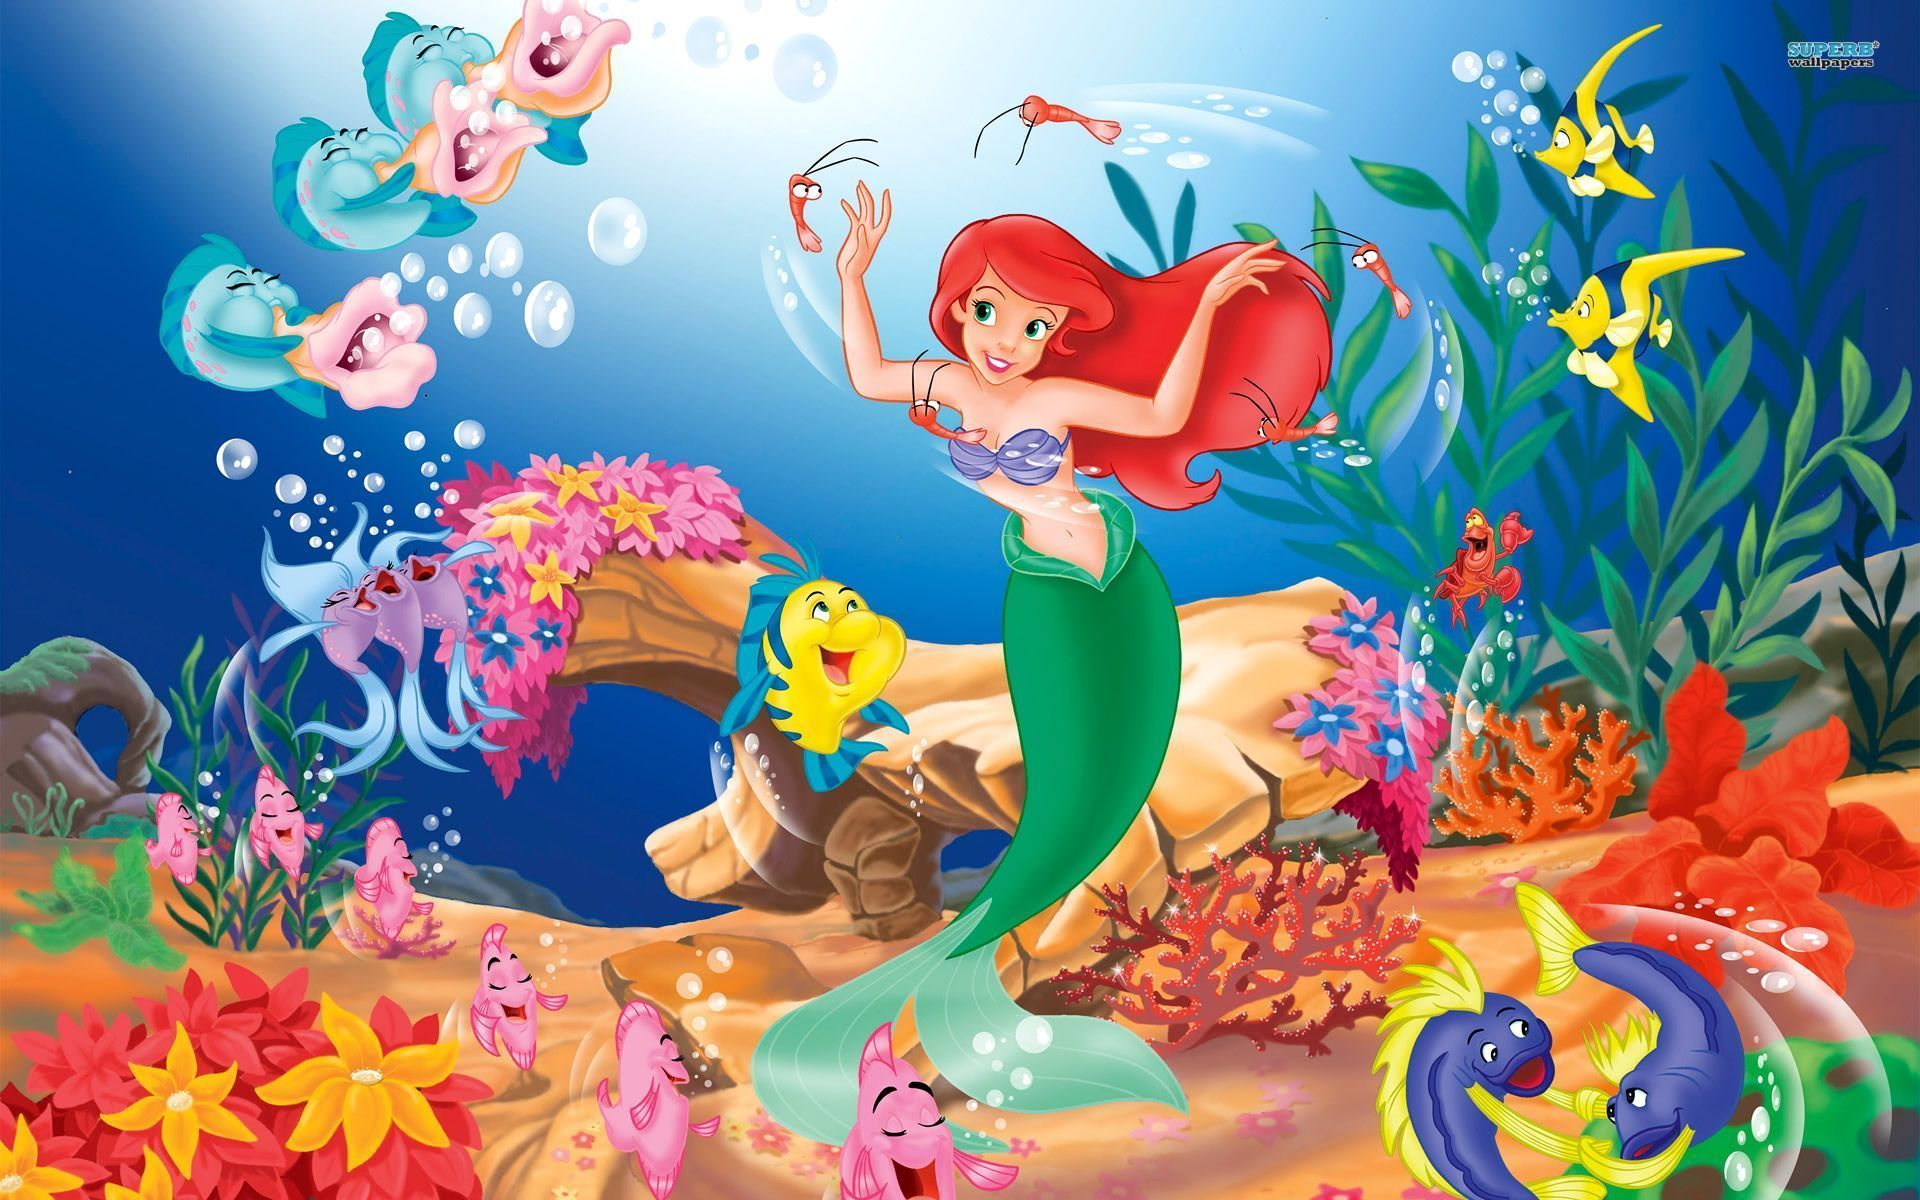 Sofia Coppola To Direct Live Action 'The Little Mermaid